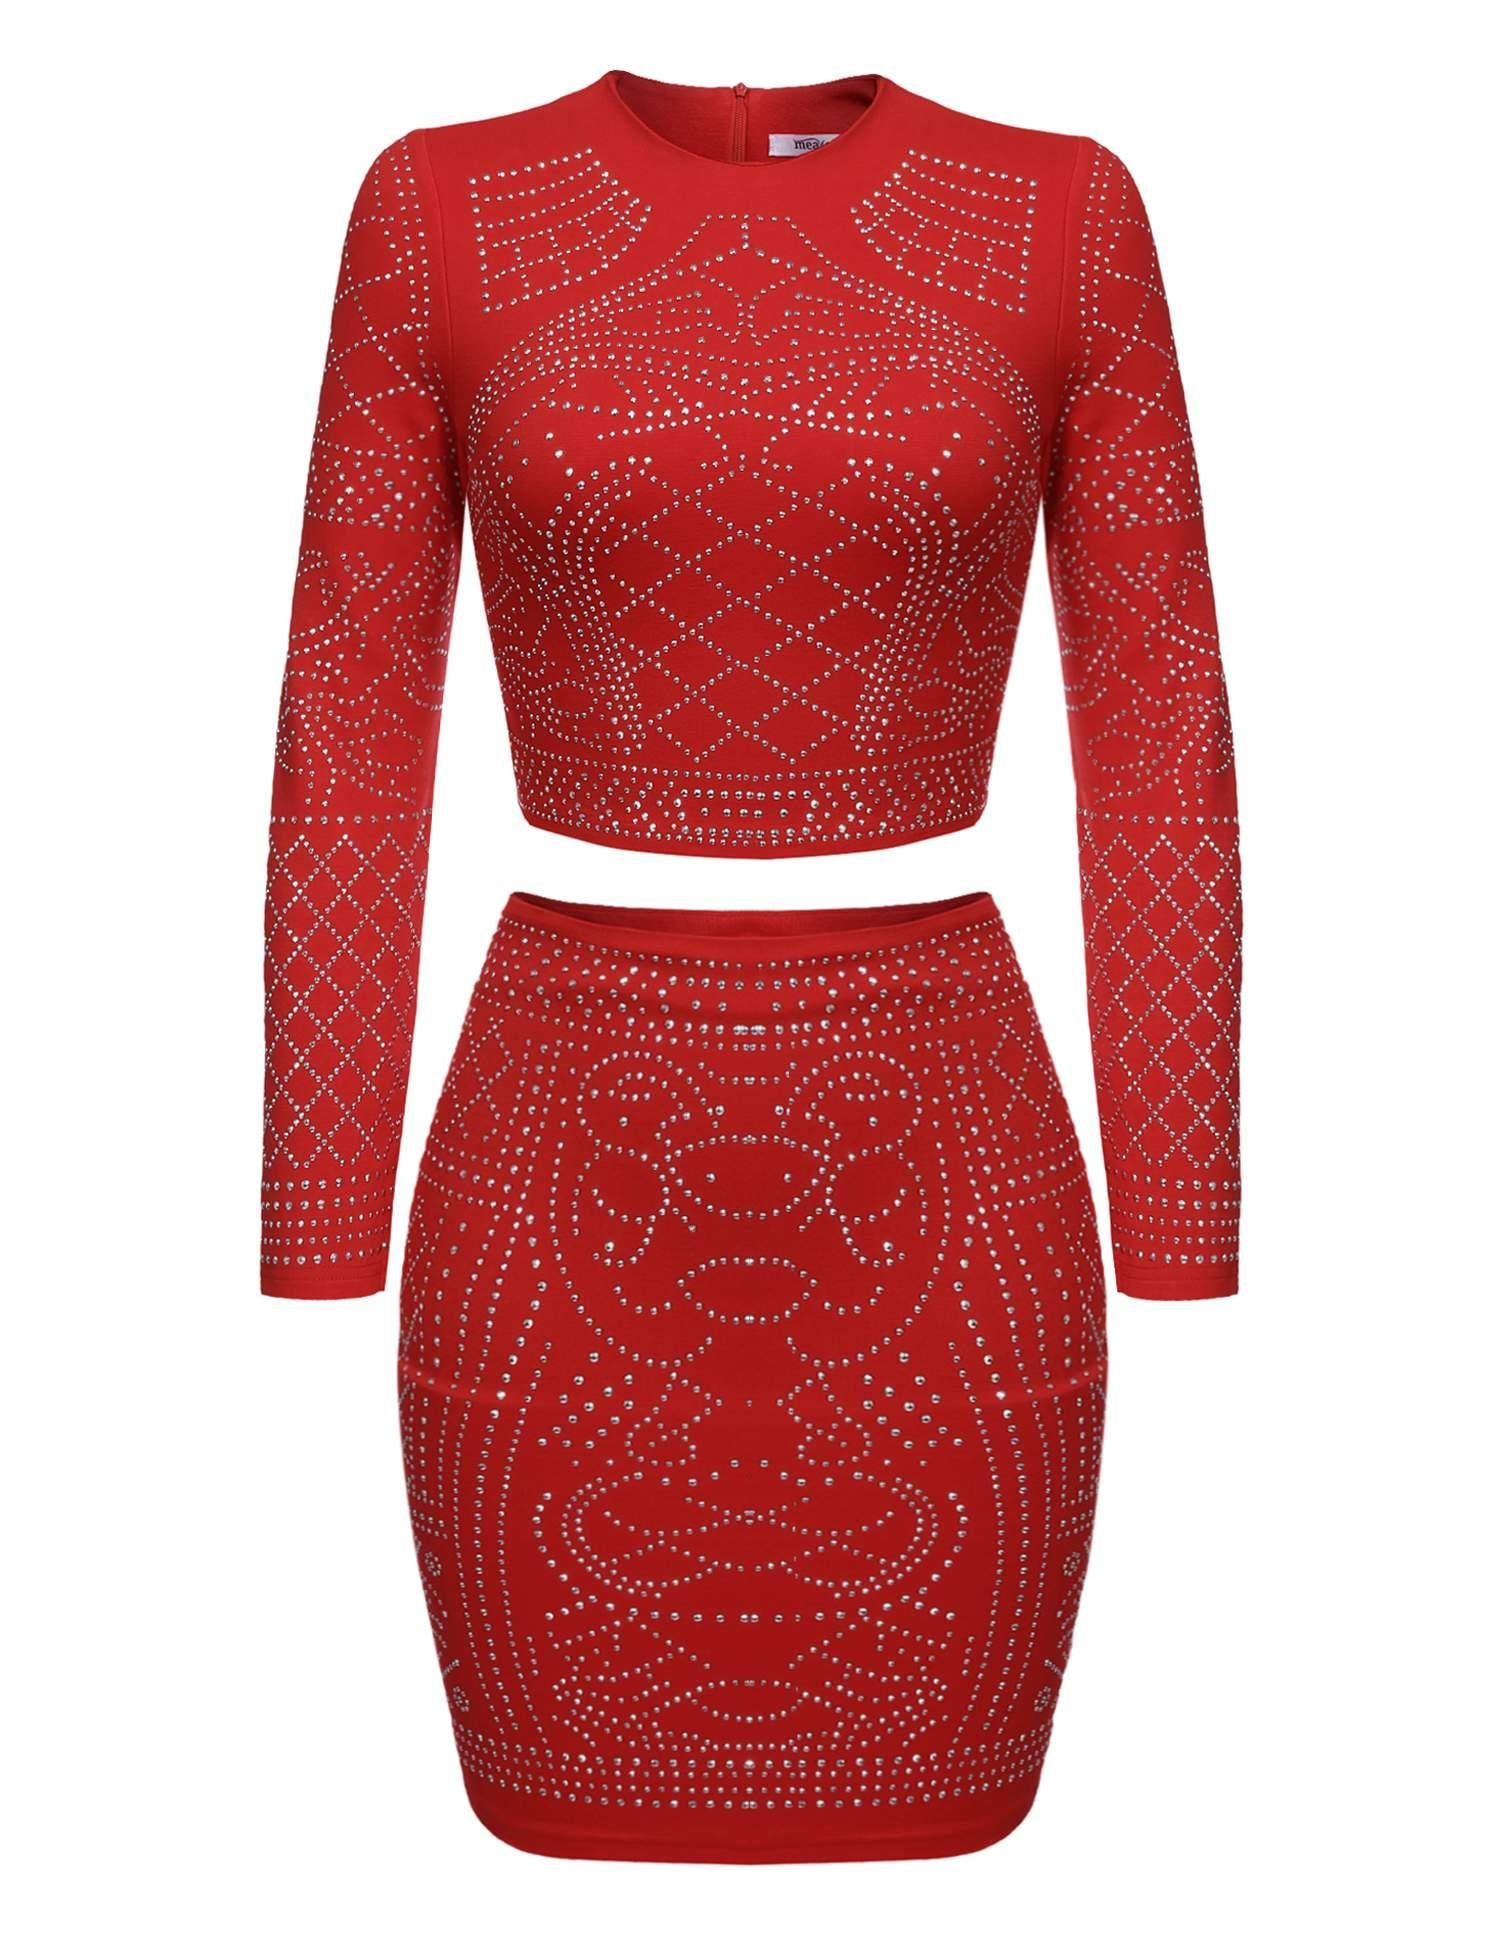 ELESOL Women Two Pieces Outfit Long Sleeve Beaded Tank and Mini Skirt Set (Red XL)